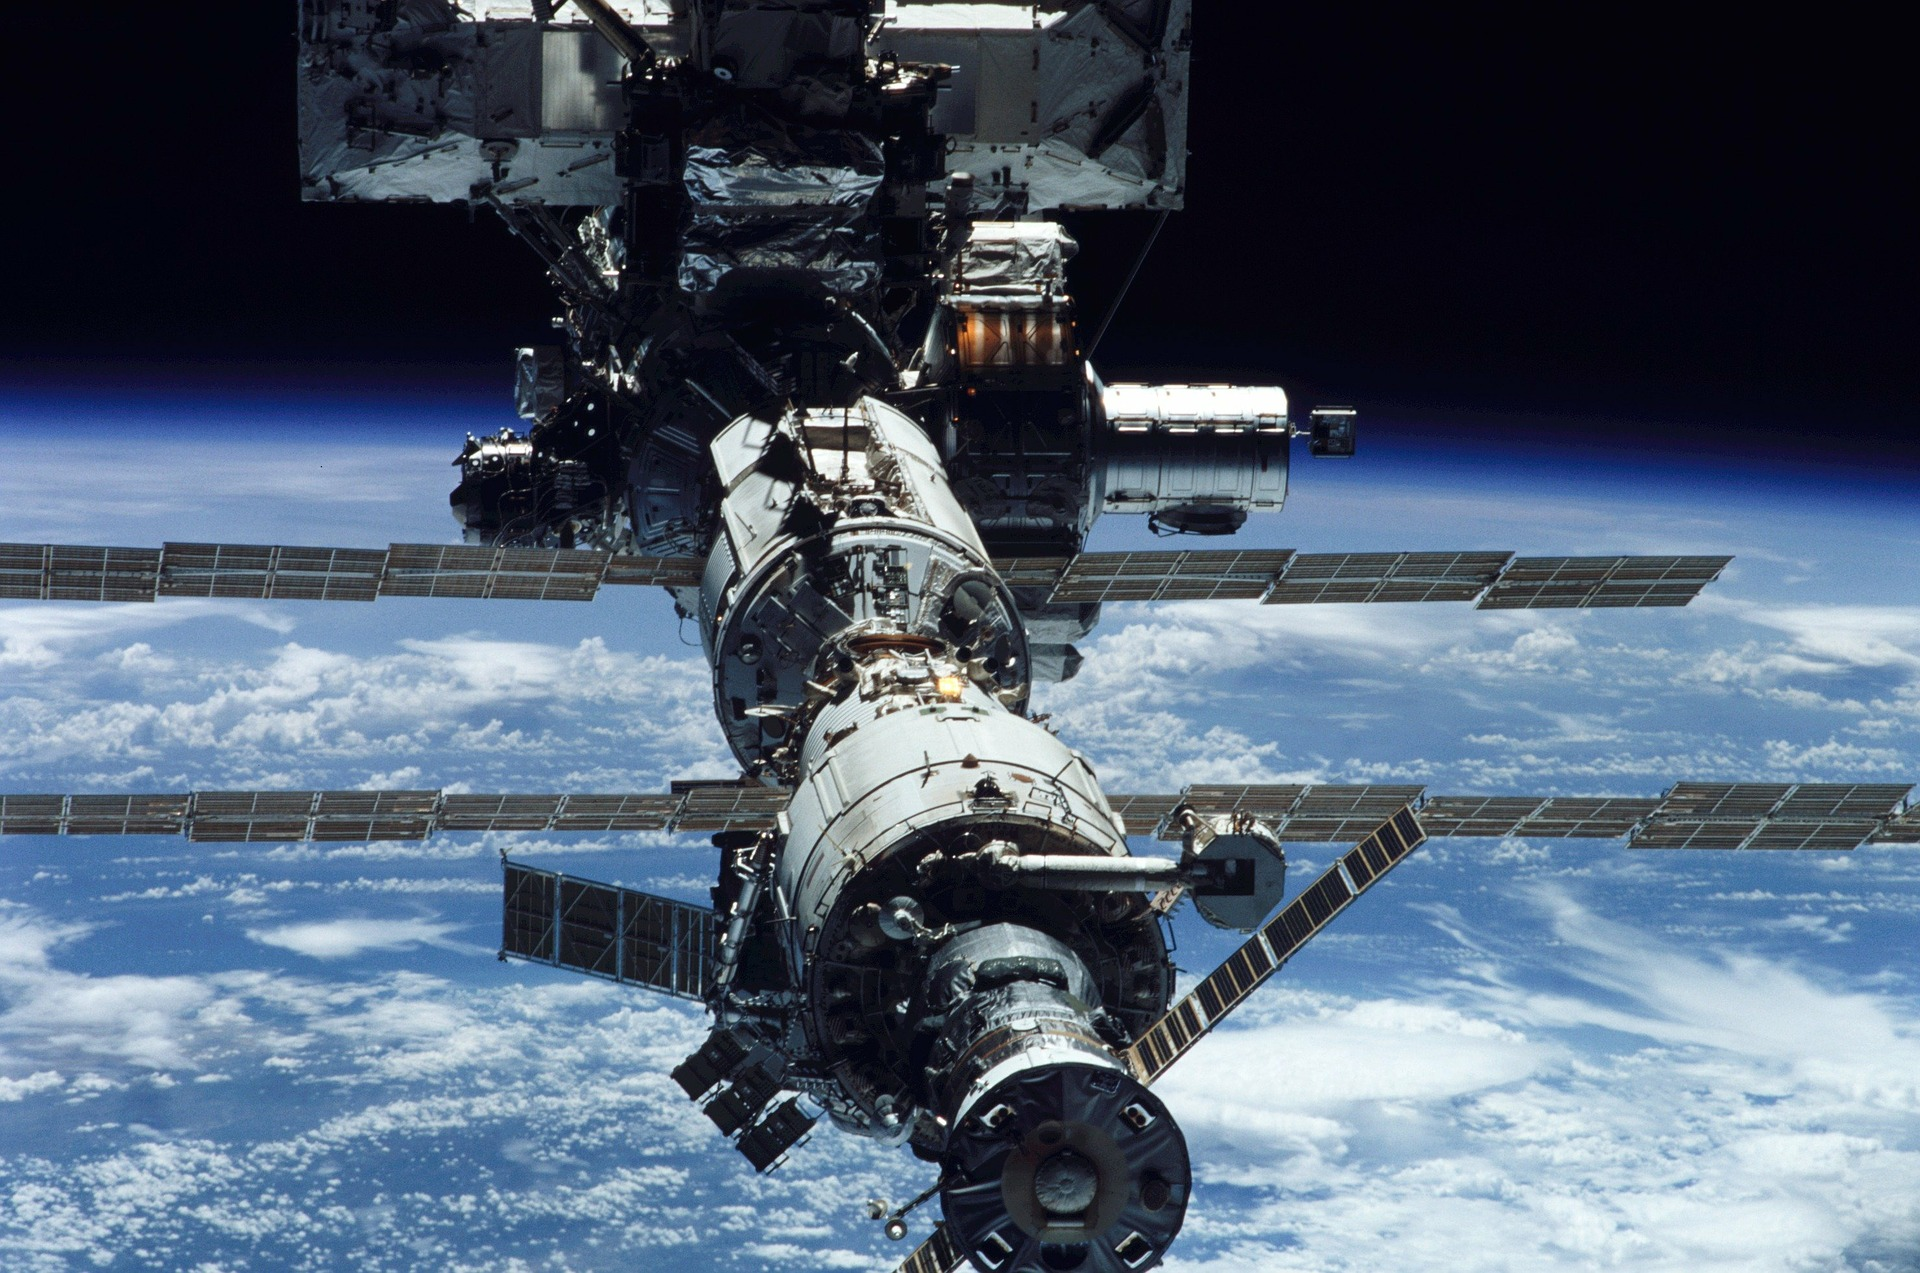 iss-11114_1920